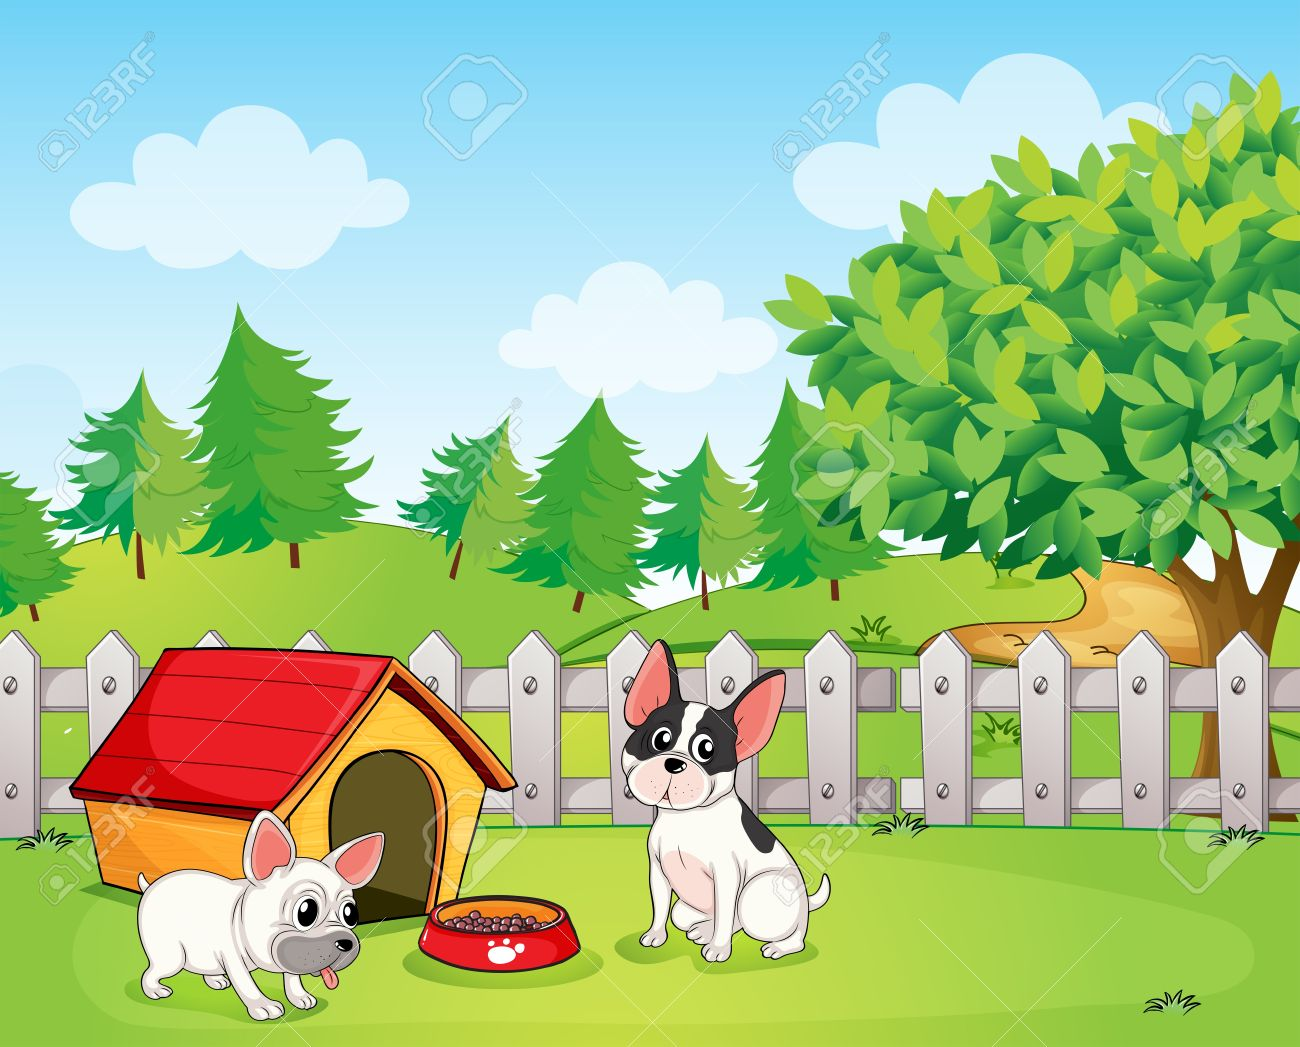 My backyard clipart 20 free Cliparts   Download images on ...